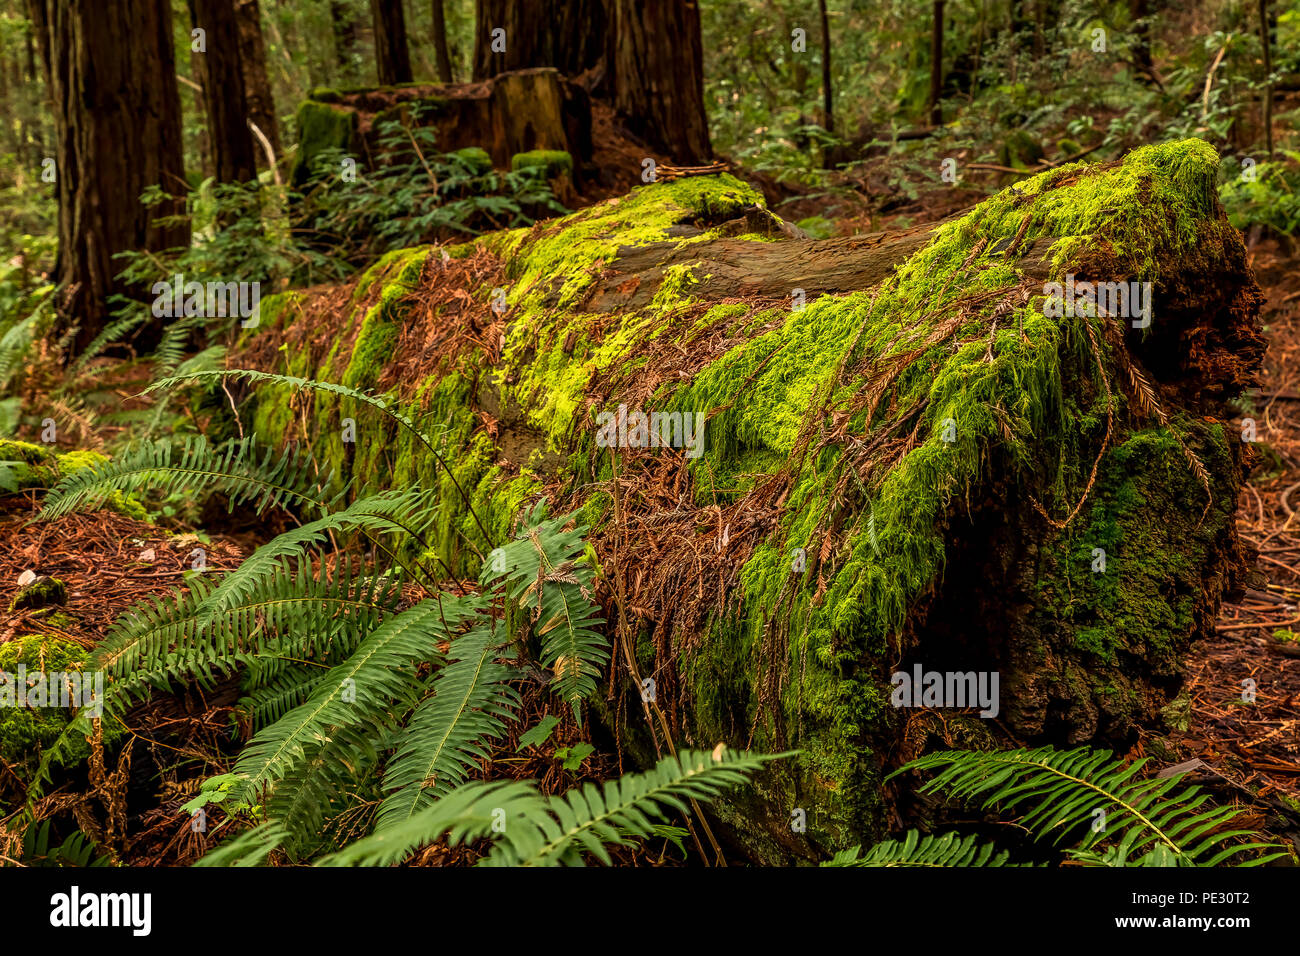 Mossy tree trunk and fern amongst giant sequoia trees the Redwoods Forest in California - Stock Image